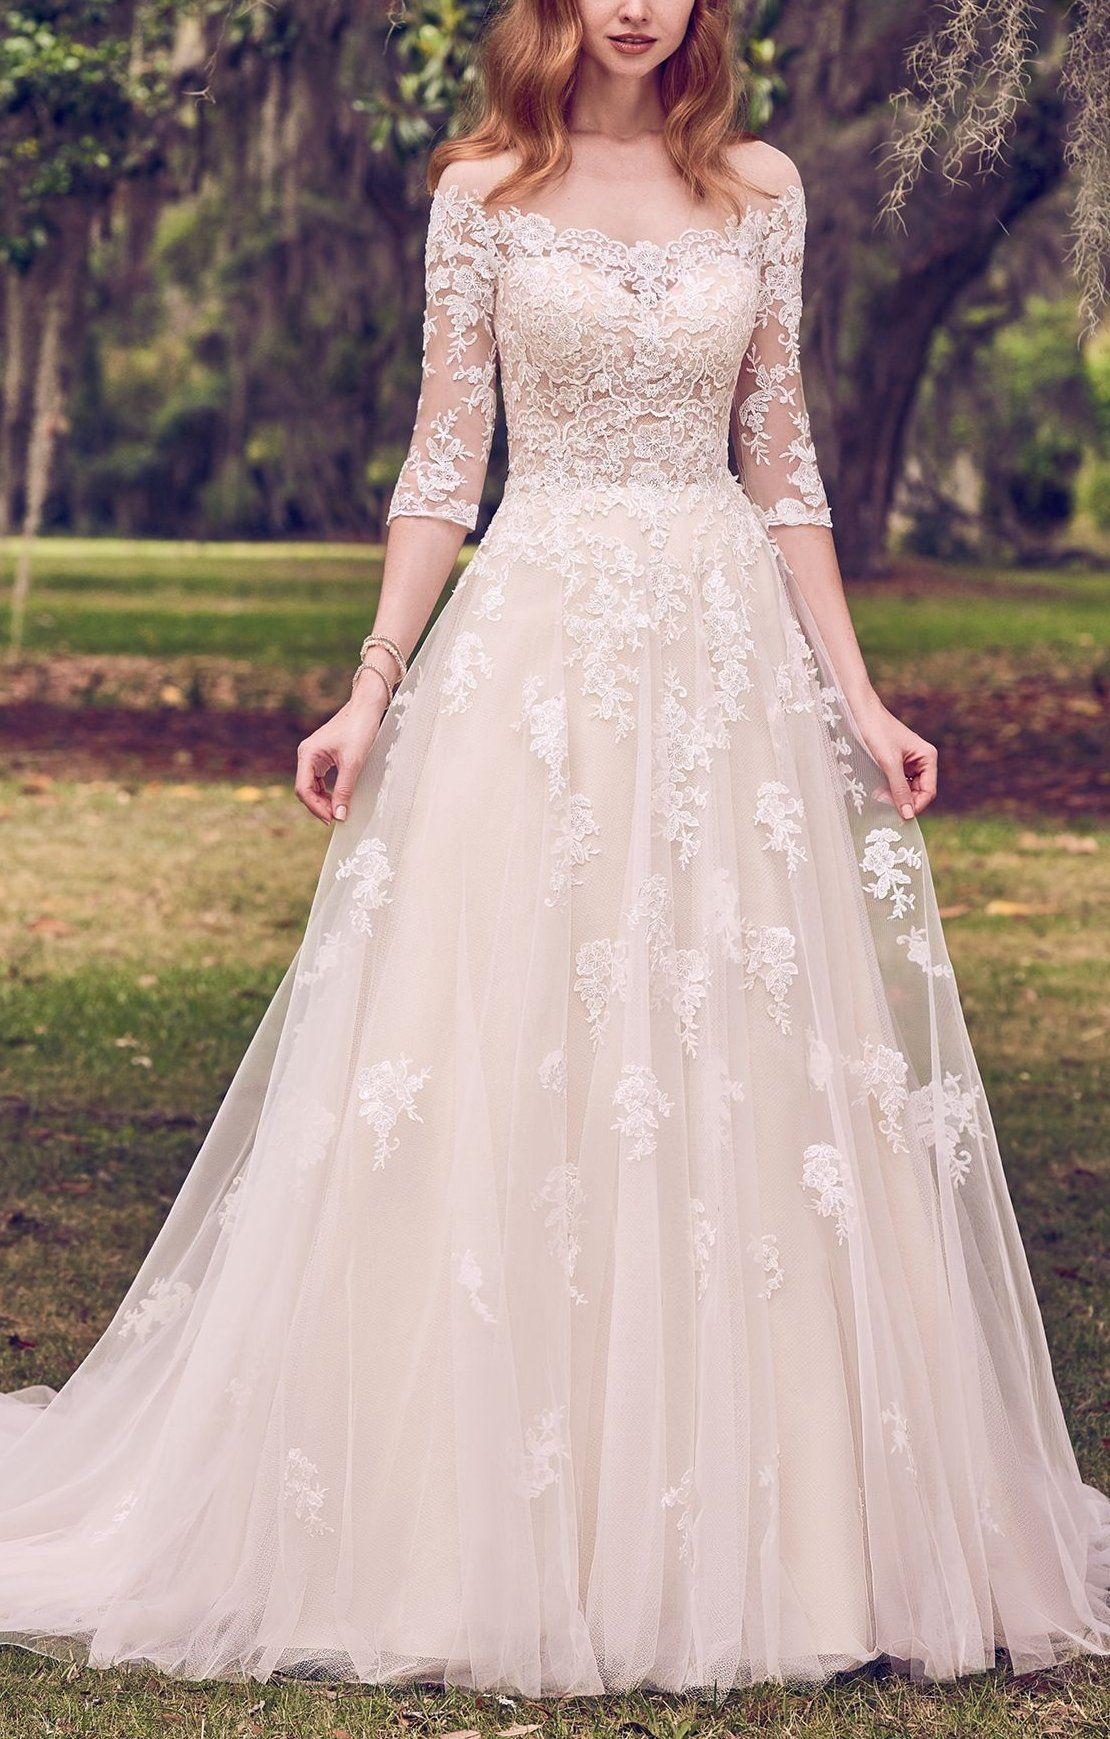 Bree By Maggie Sottero Wedding Dresses Romantic Wedding Gown Wedding Gowns Lace Perfect Wedding Dress